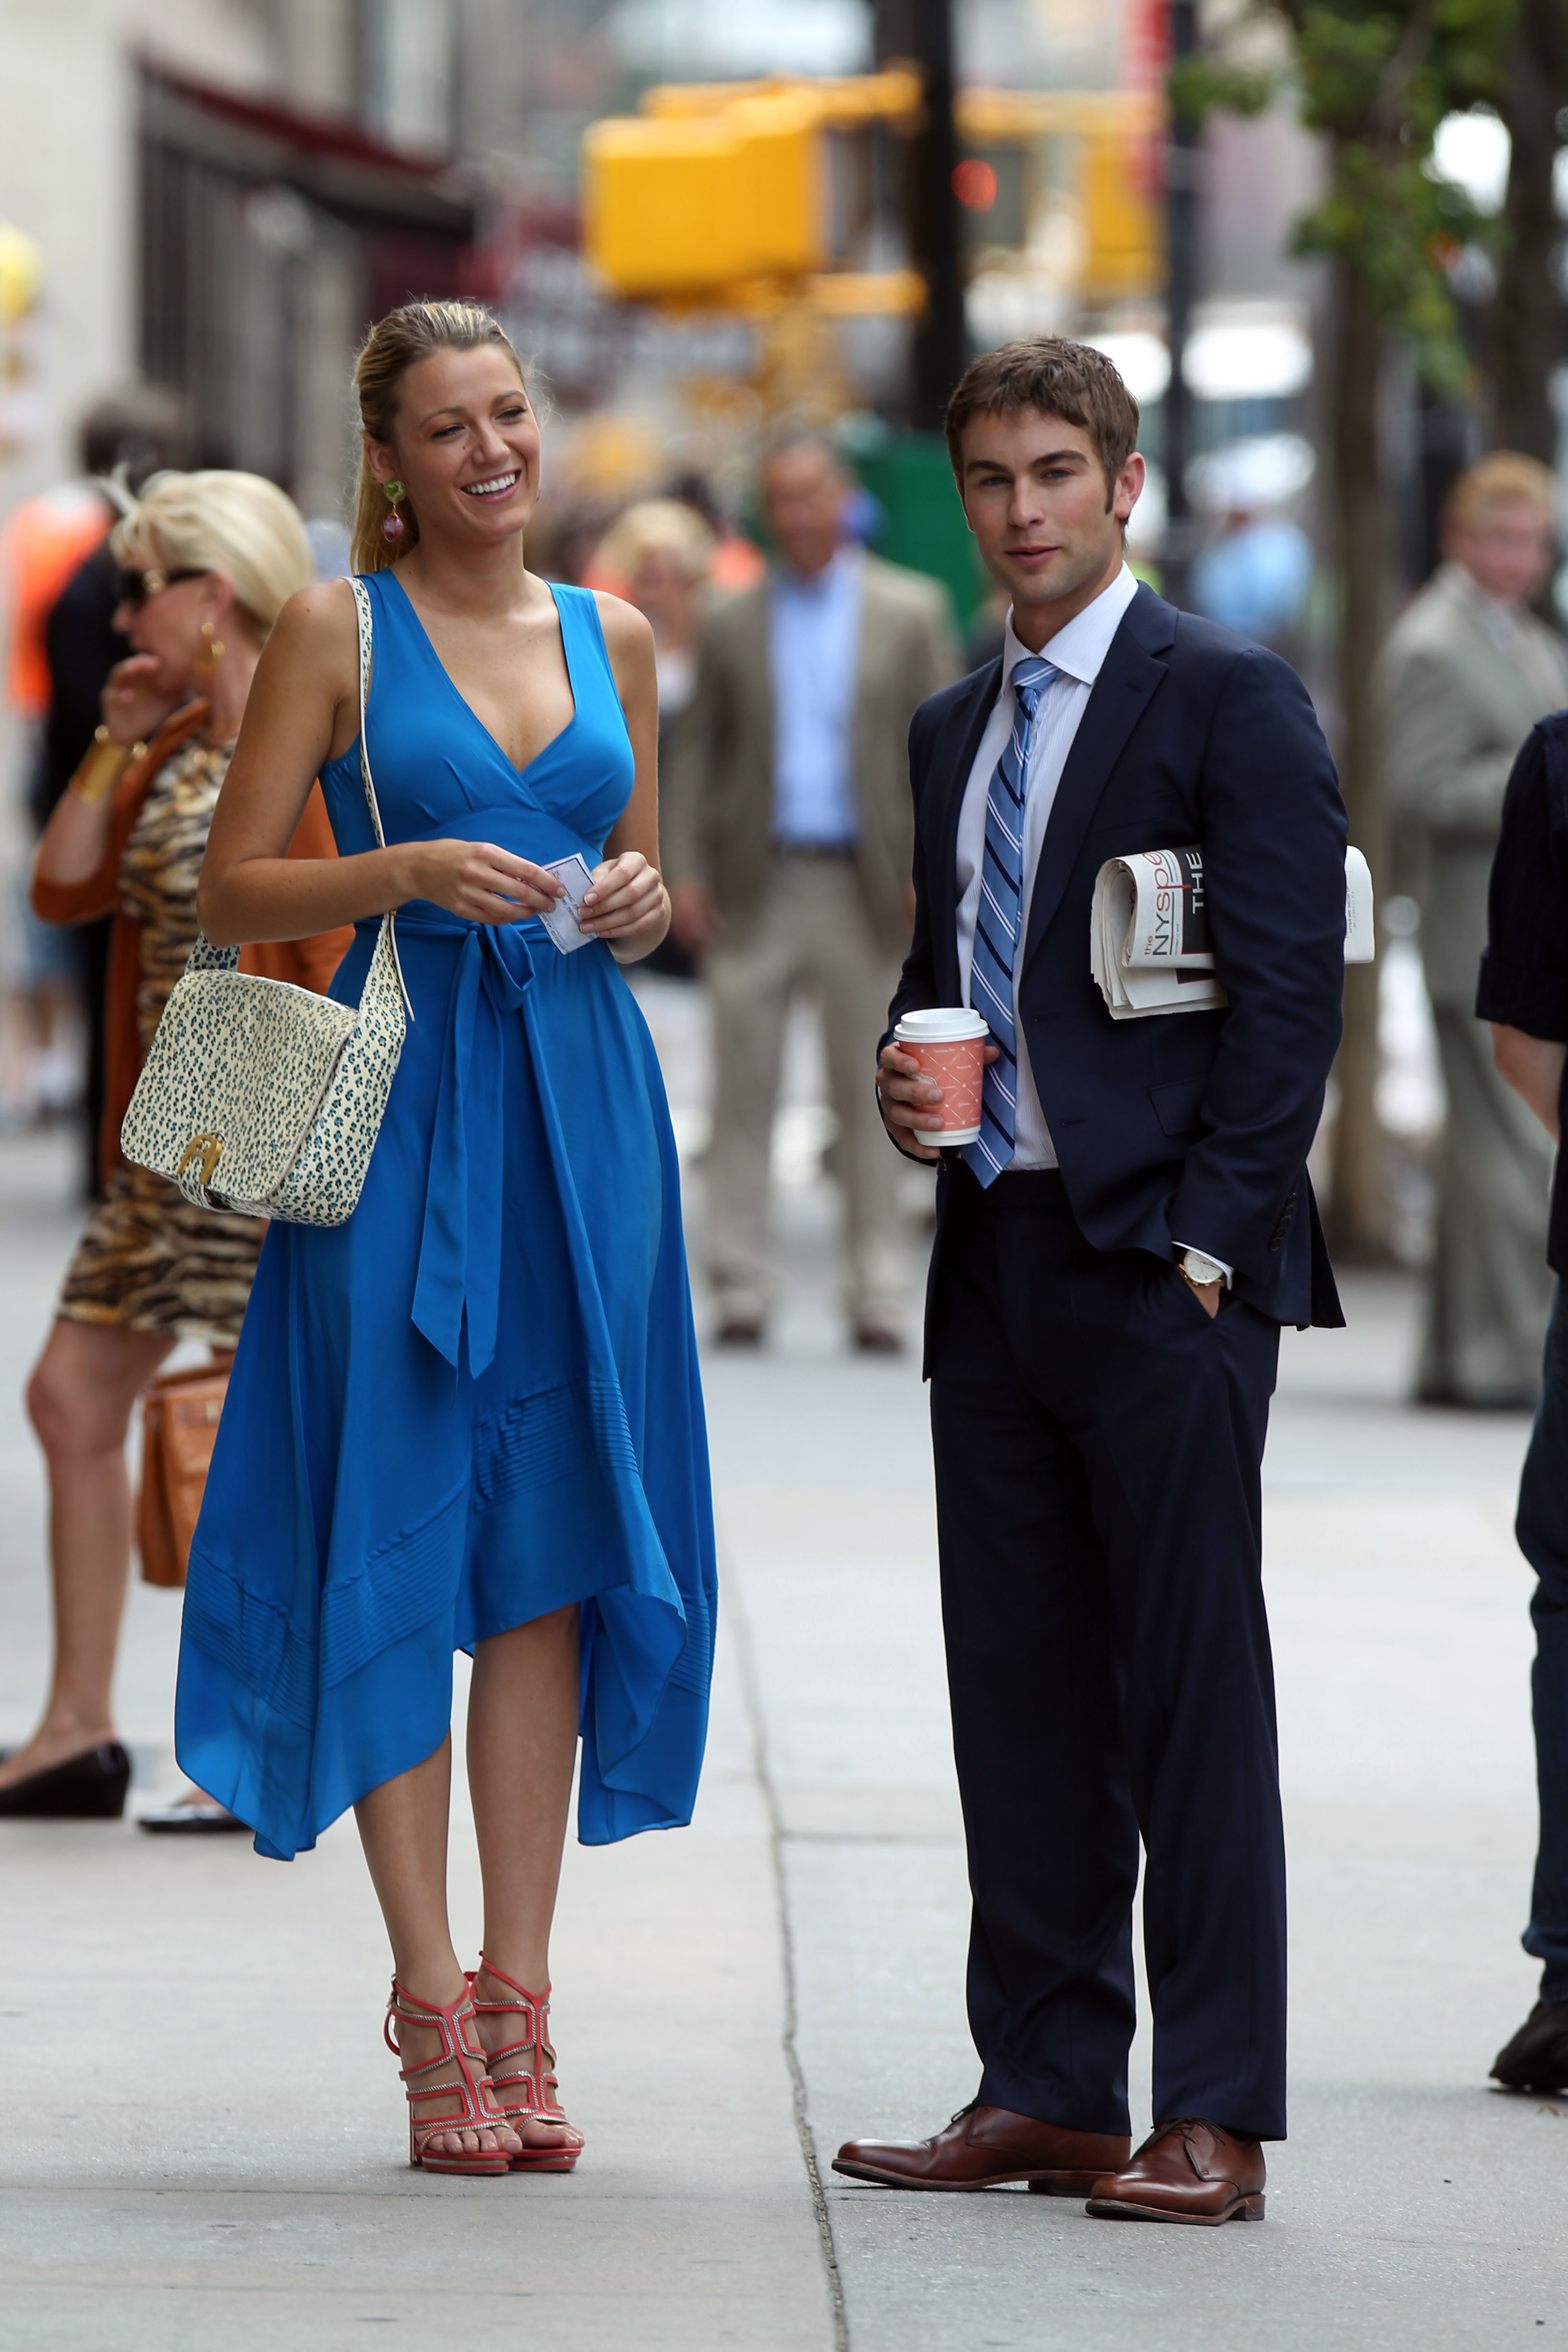 Blake Lively and Chace Crawford took their marks on set in July 2012.